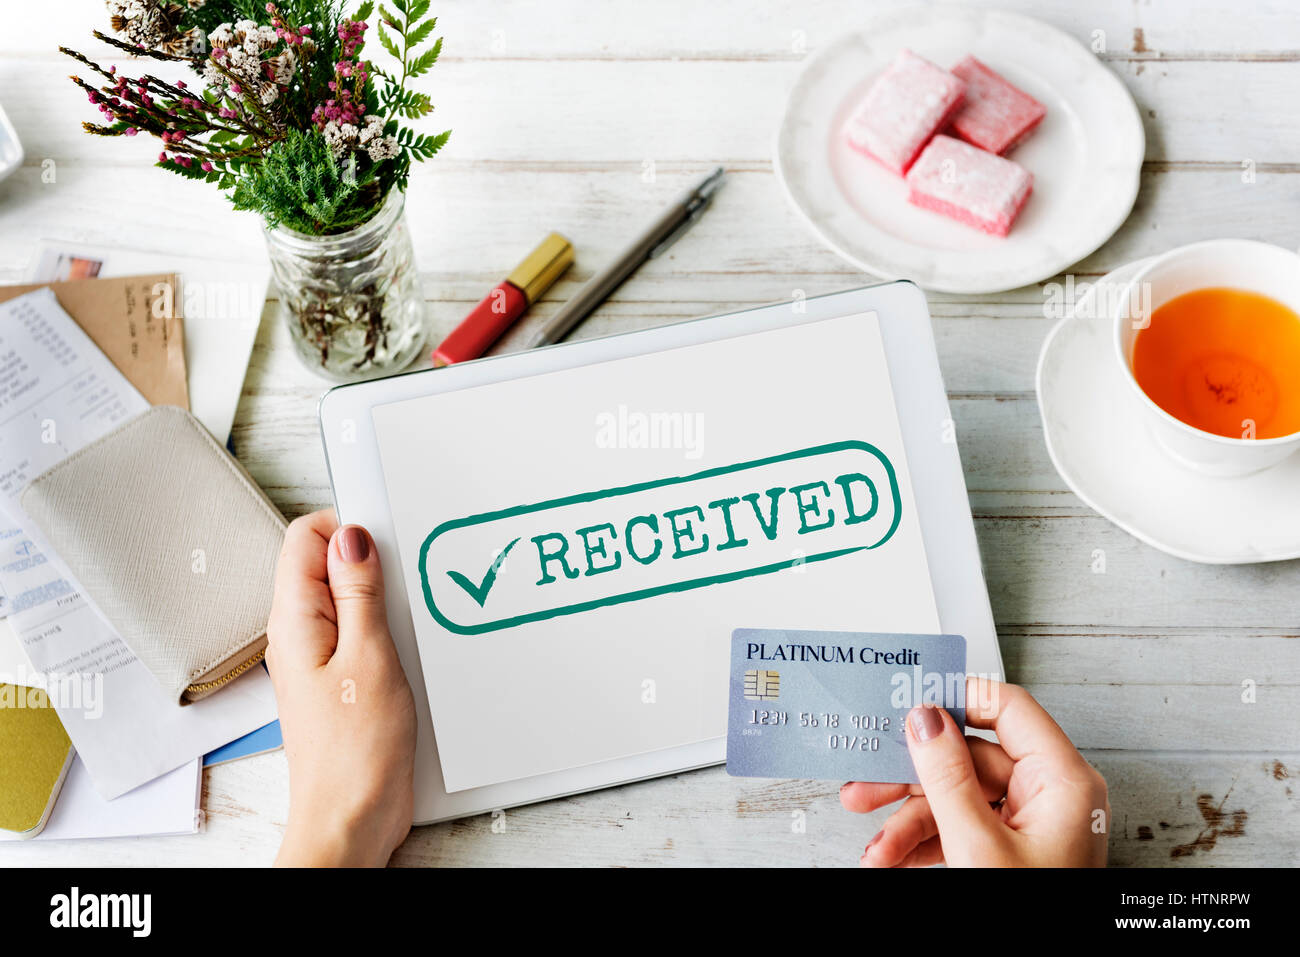 Authorized Received Tick Stamp Concept - Stock Image